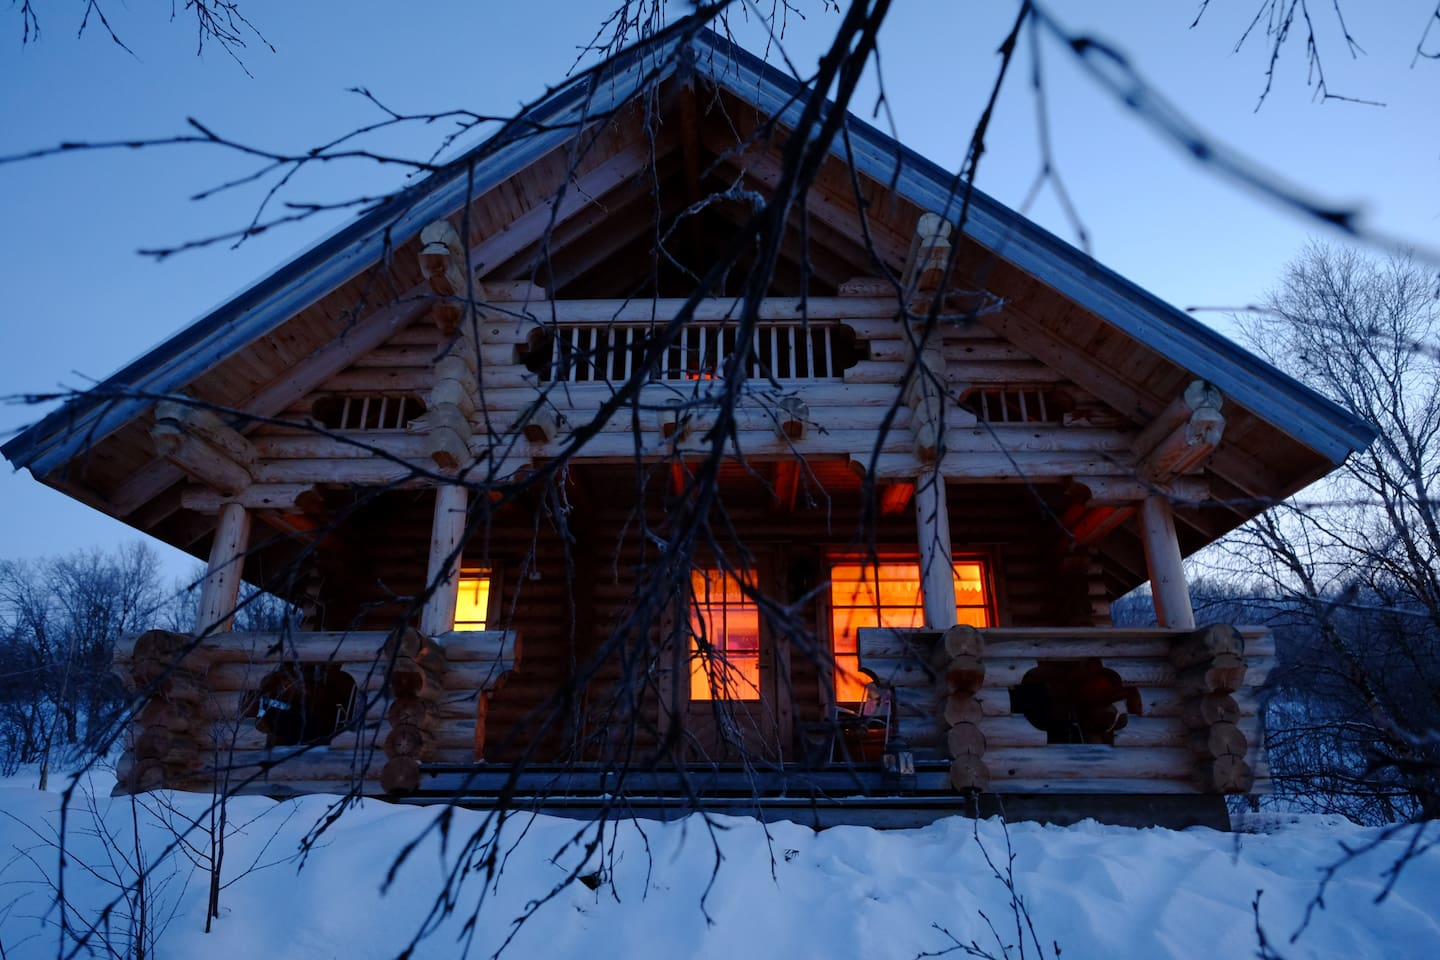 A magical log cabin in the Nortern most village in Finland